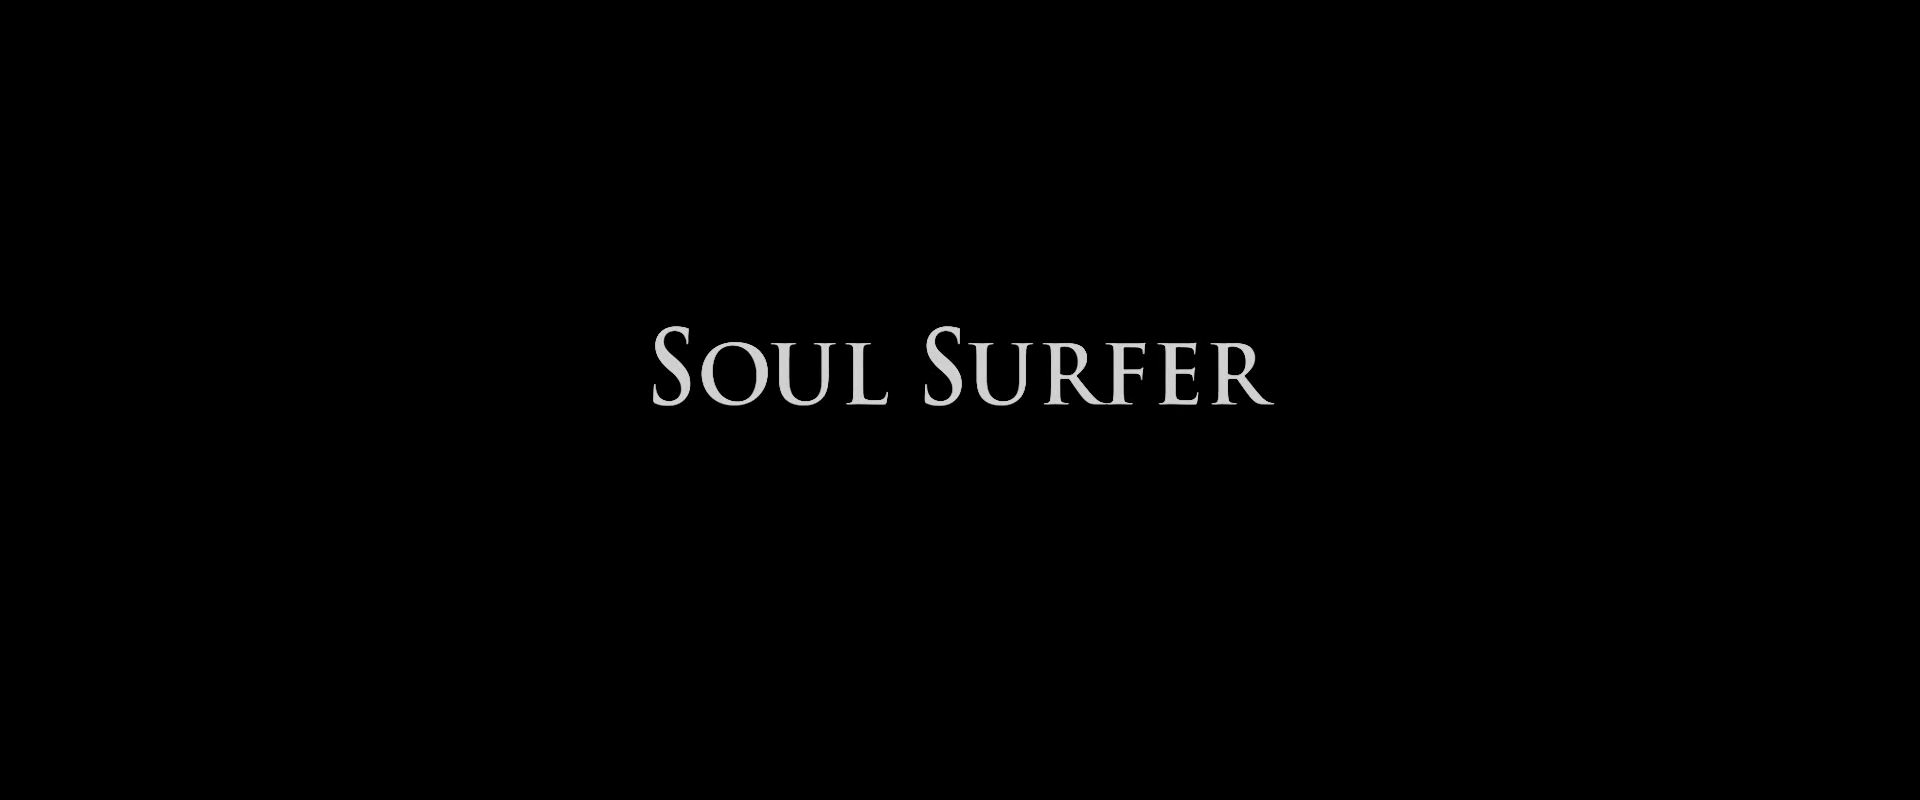 soul surfer full movie free no download